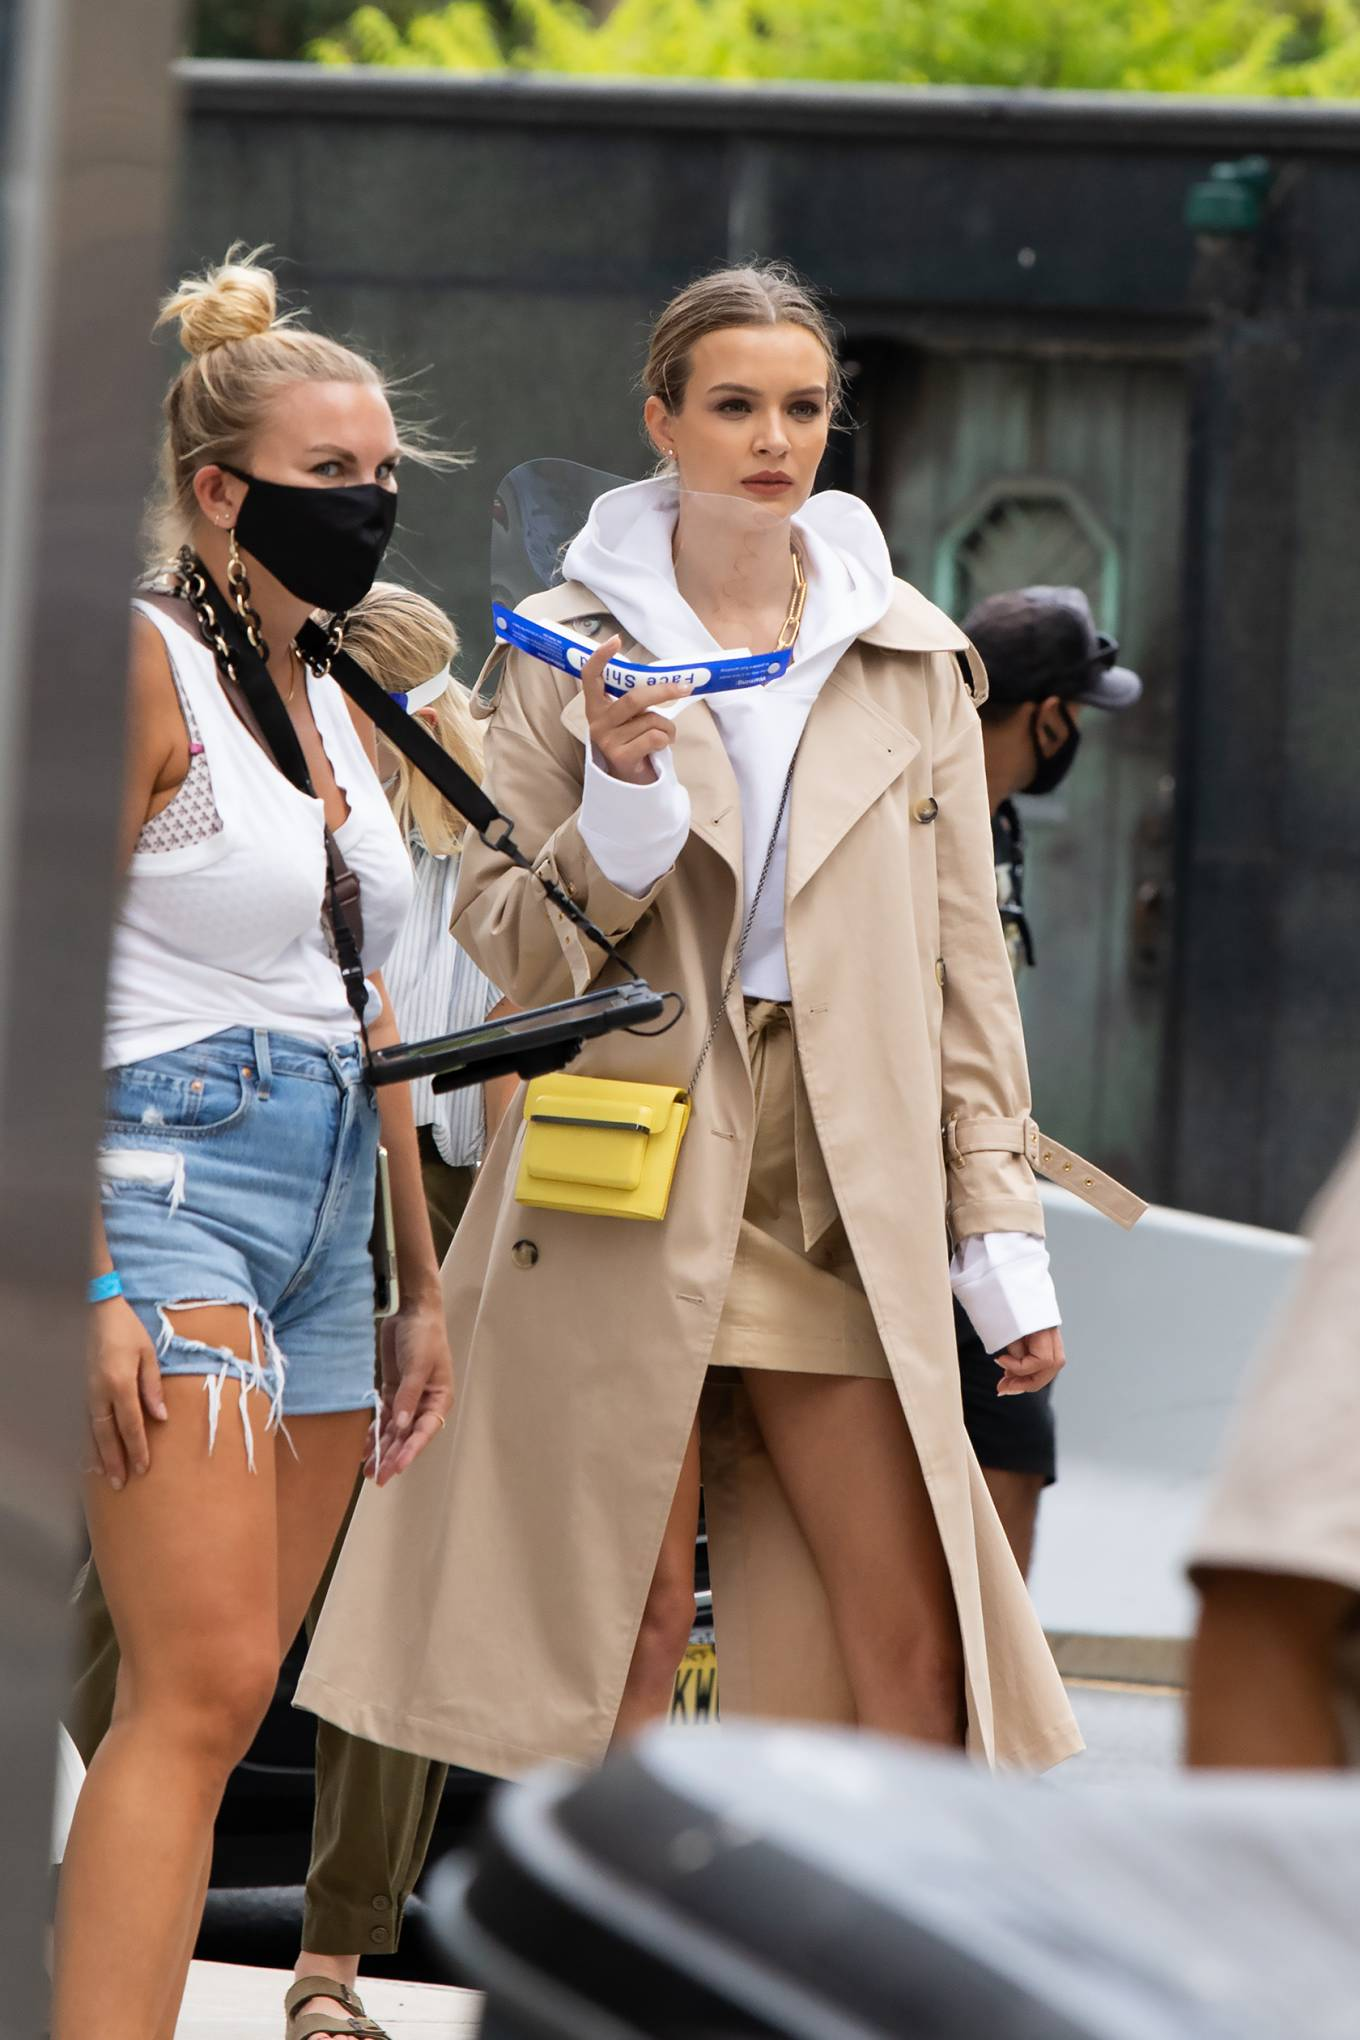 Josephine Skriver - Maybelline Commercial photoshoot in NYC